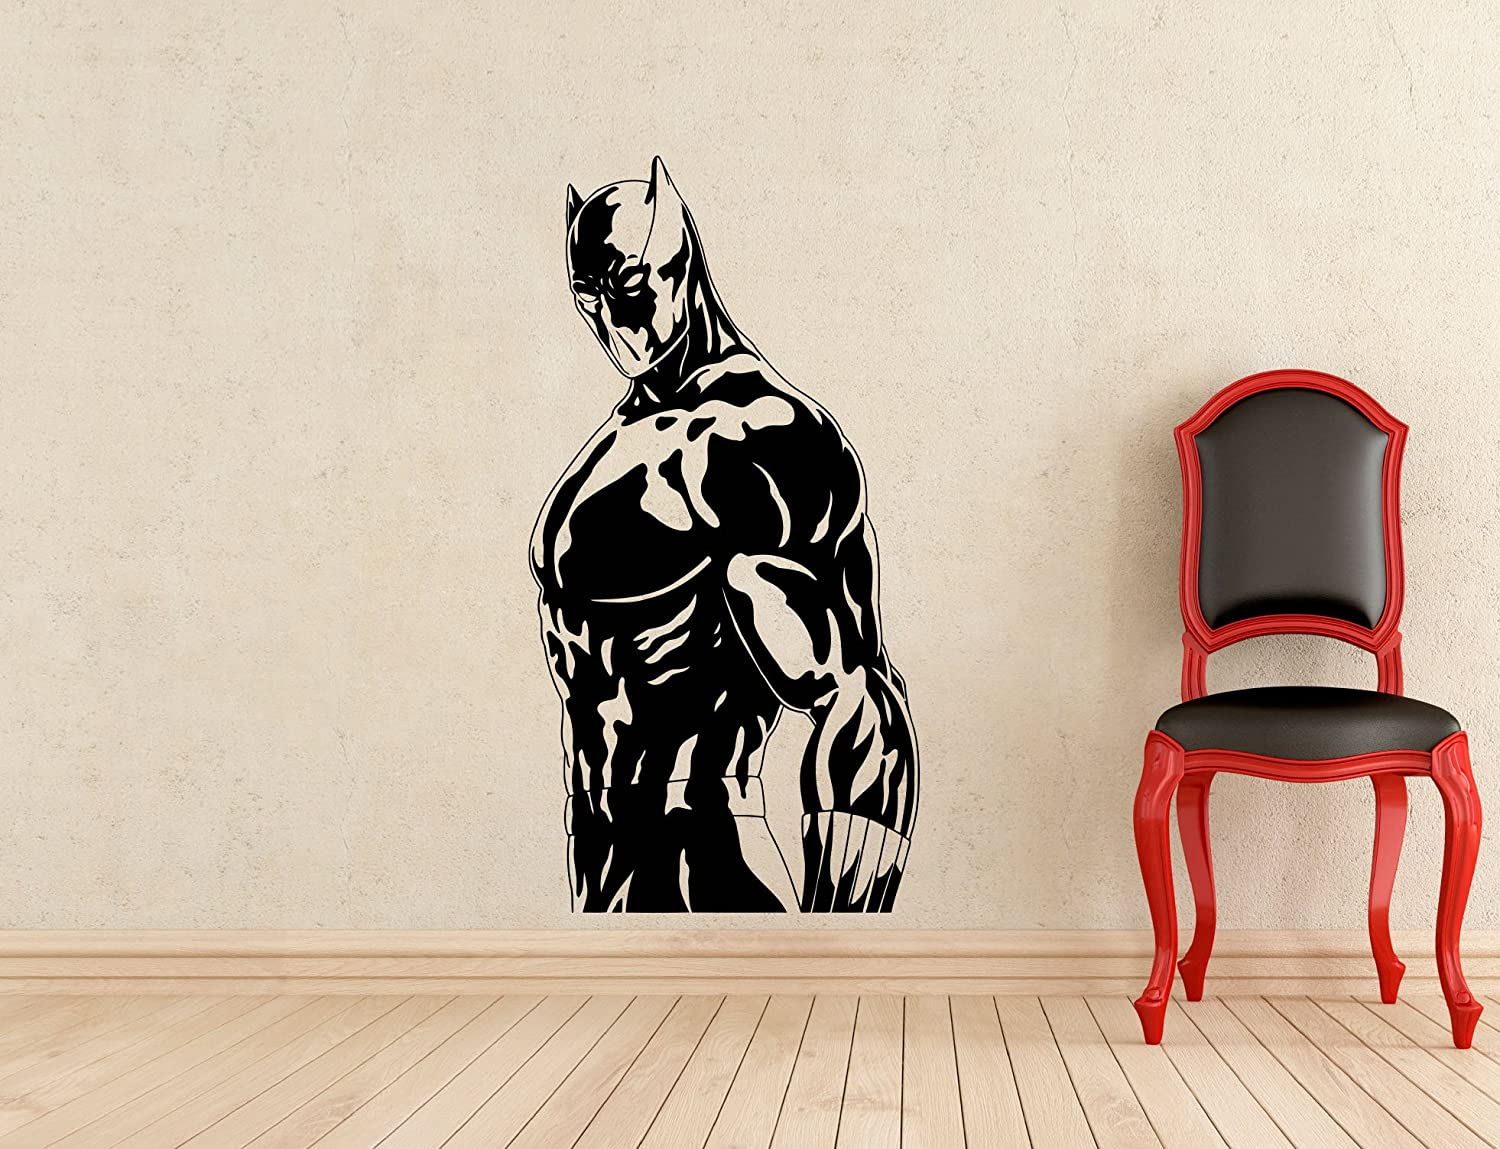 Black panther wall decal superhero vinyl sticker wall decor removable waterproof decal 126z amazon com